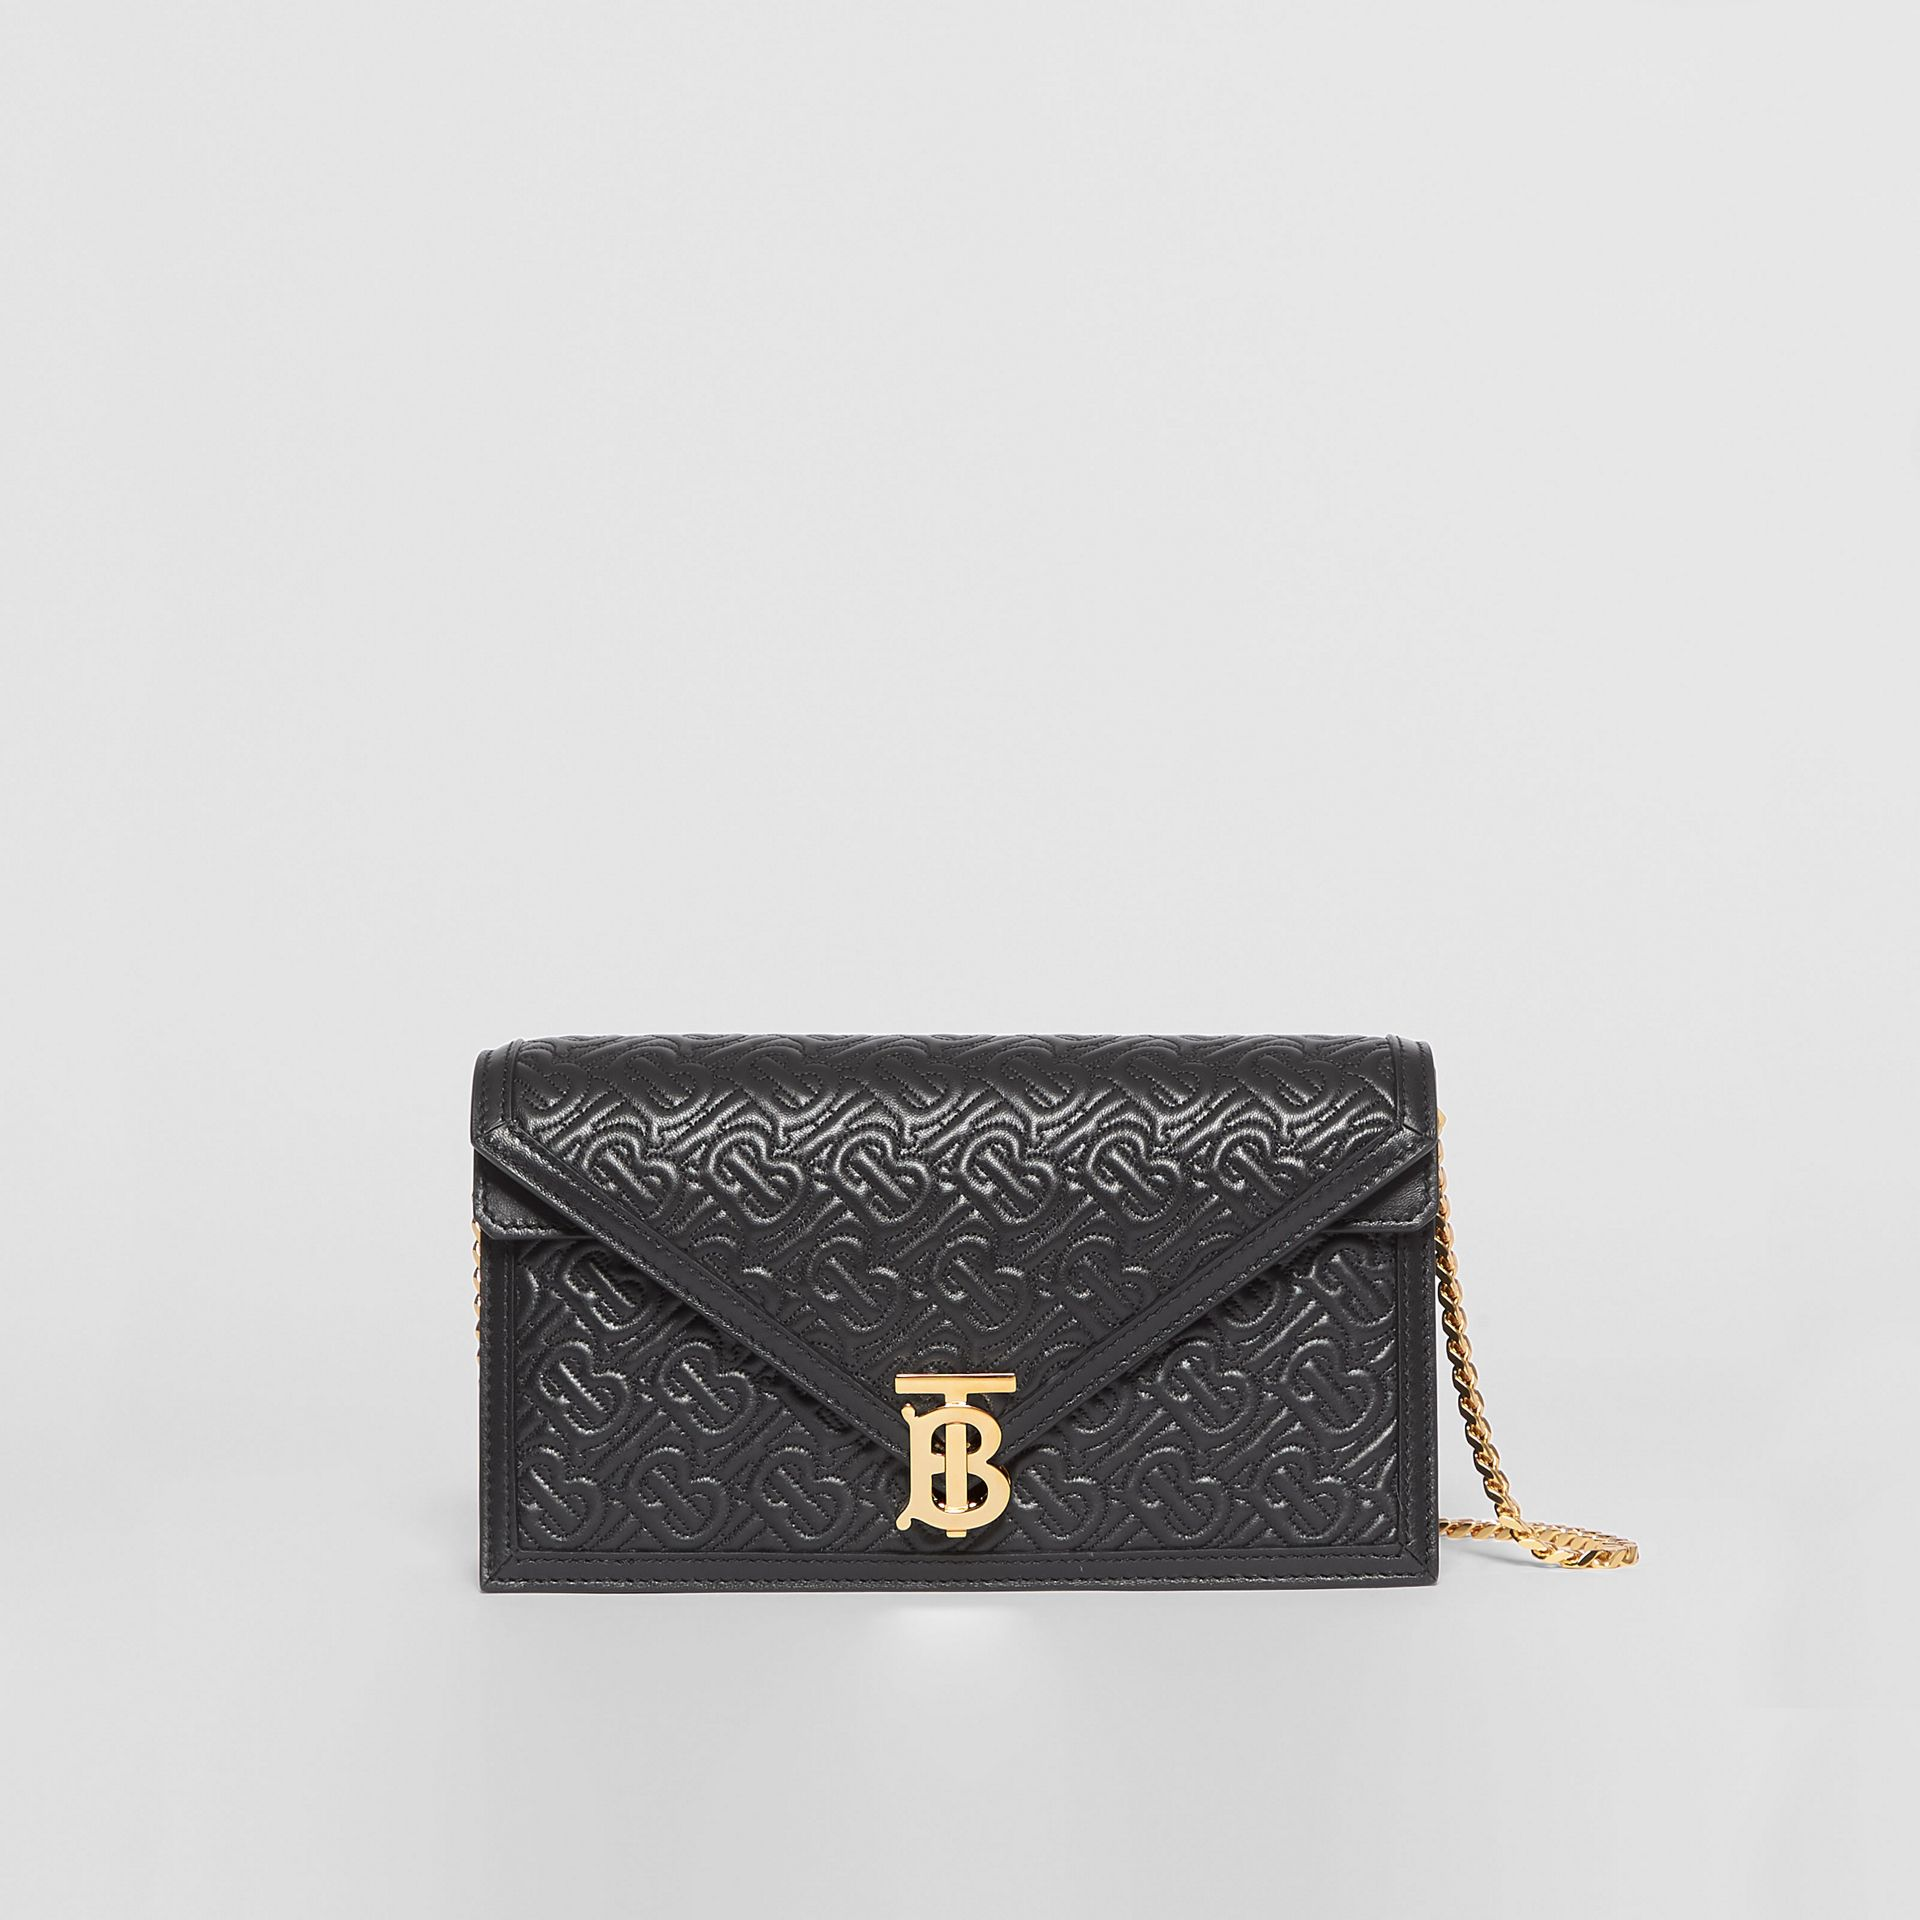 Small Quilted Monogram TB Envelope Clutch in Black - Women | Burberry - gallery image 0